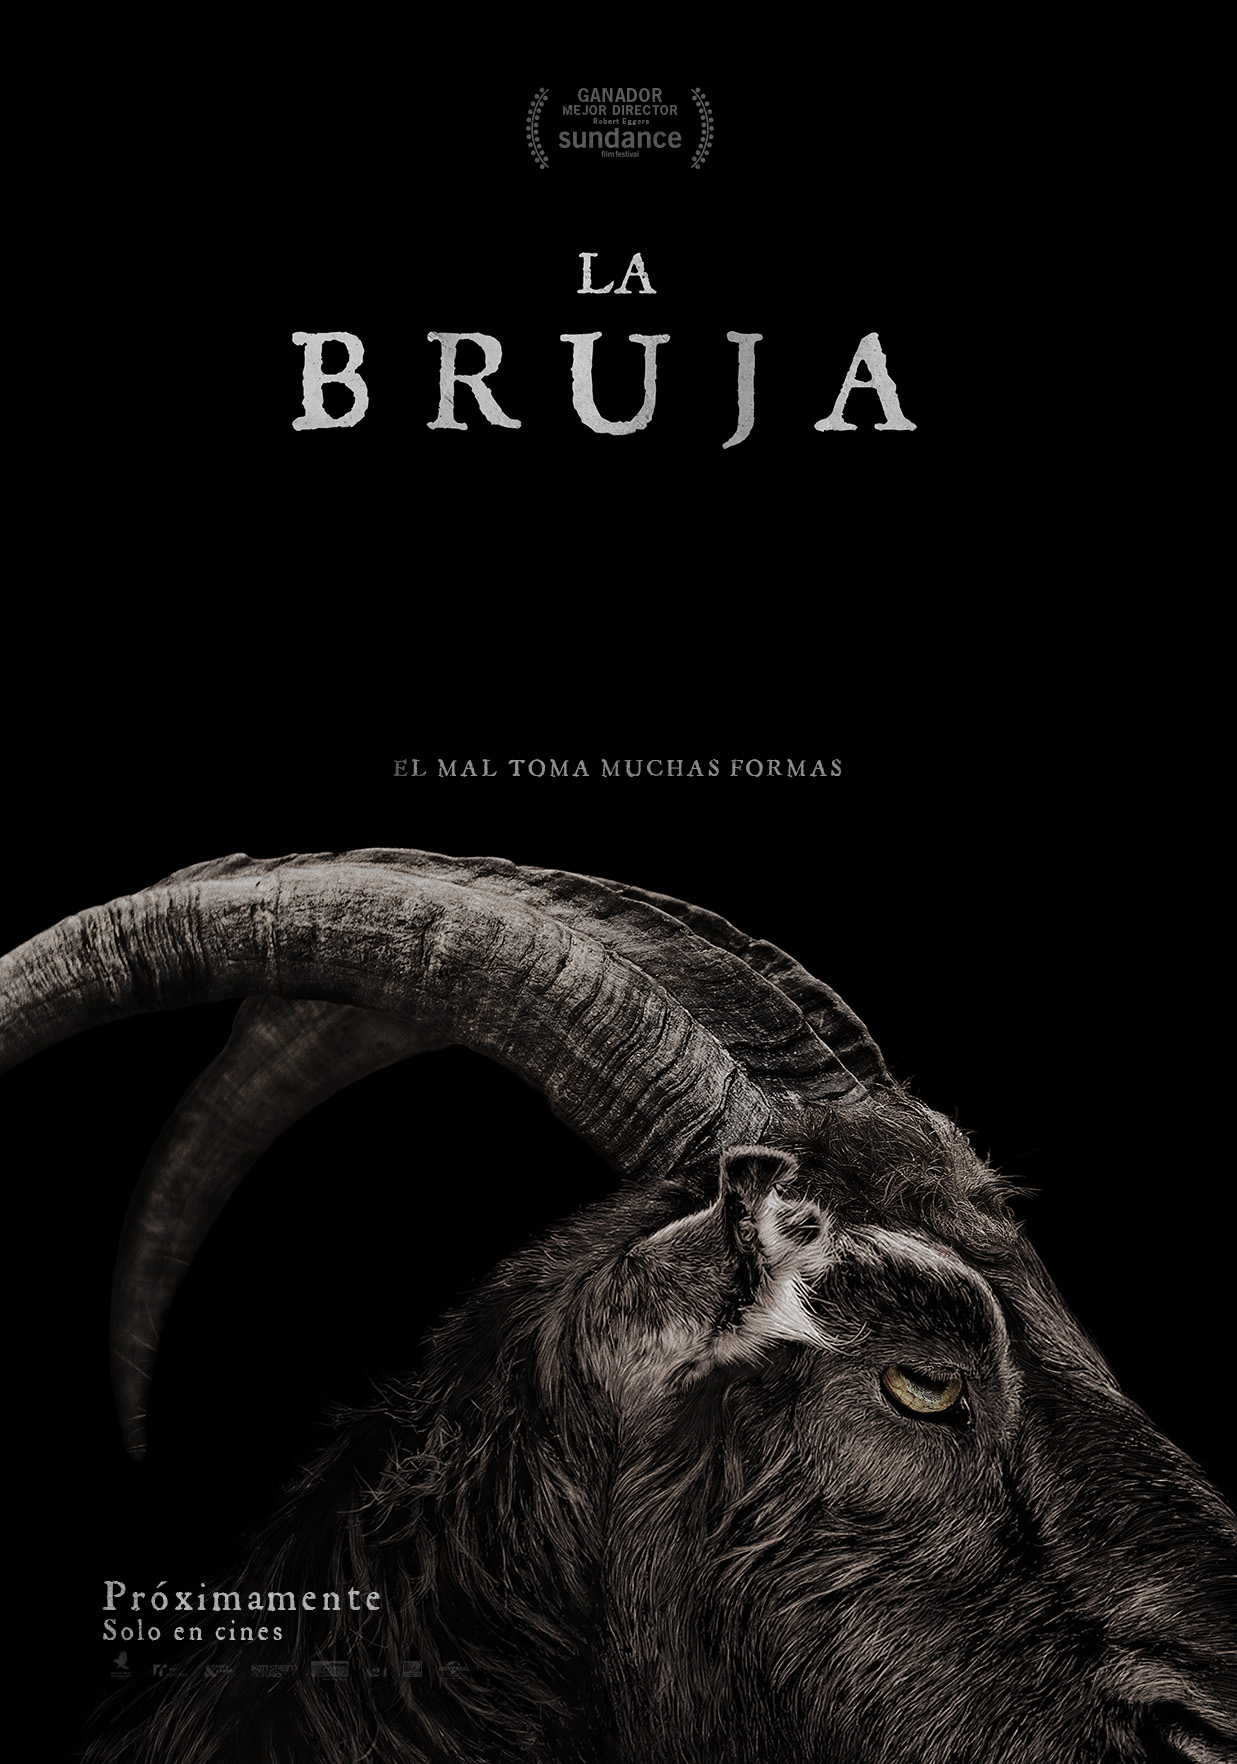 la-bruja-the-witch-poster-latino-espanol-mexico-terror-pelicula-2016-criticsight